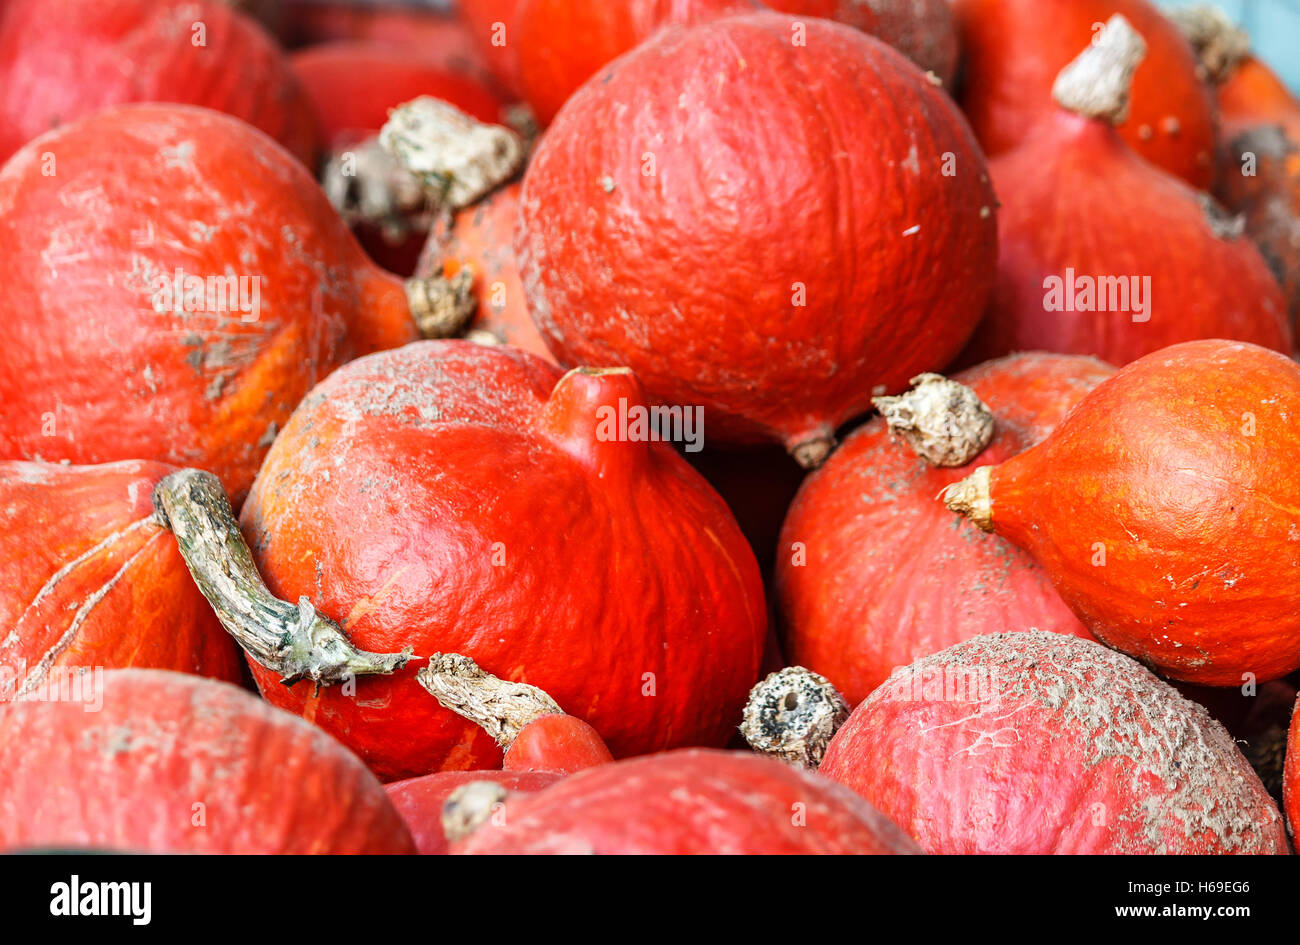 Freshly harvested red kuri squash Stock Photo